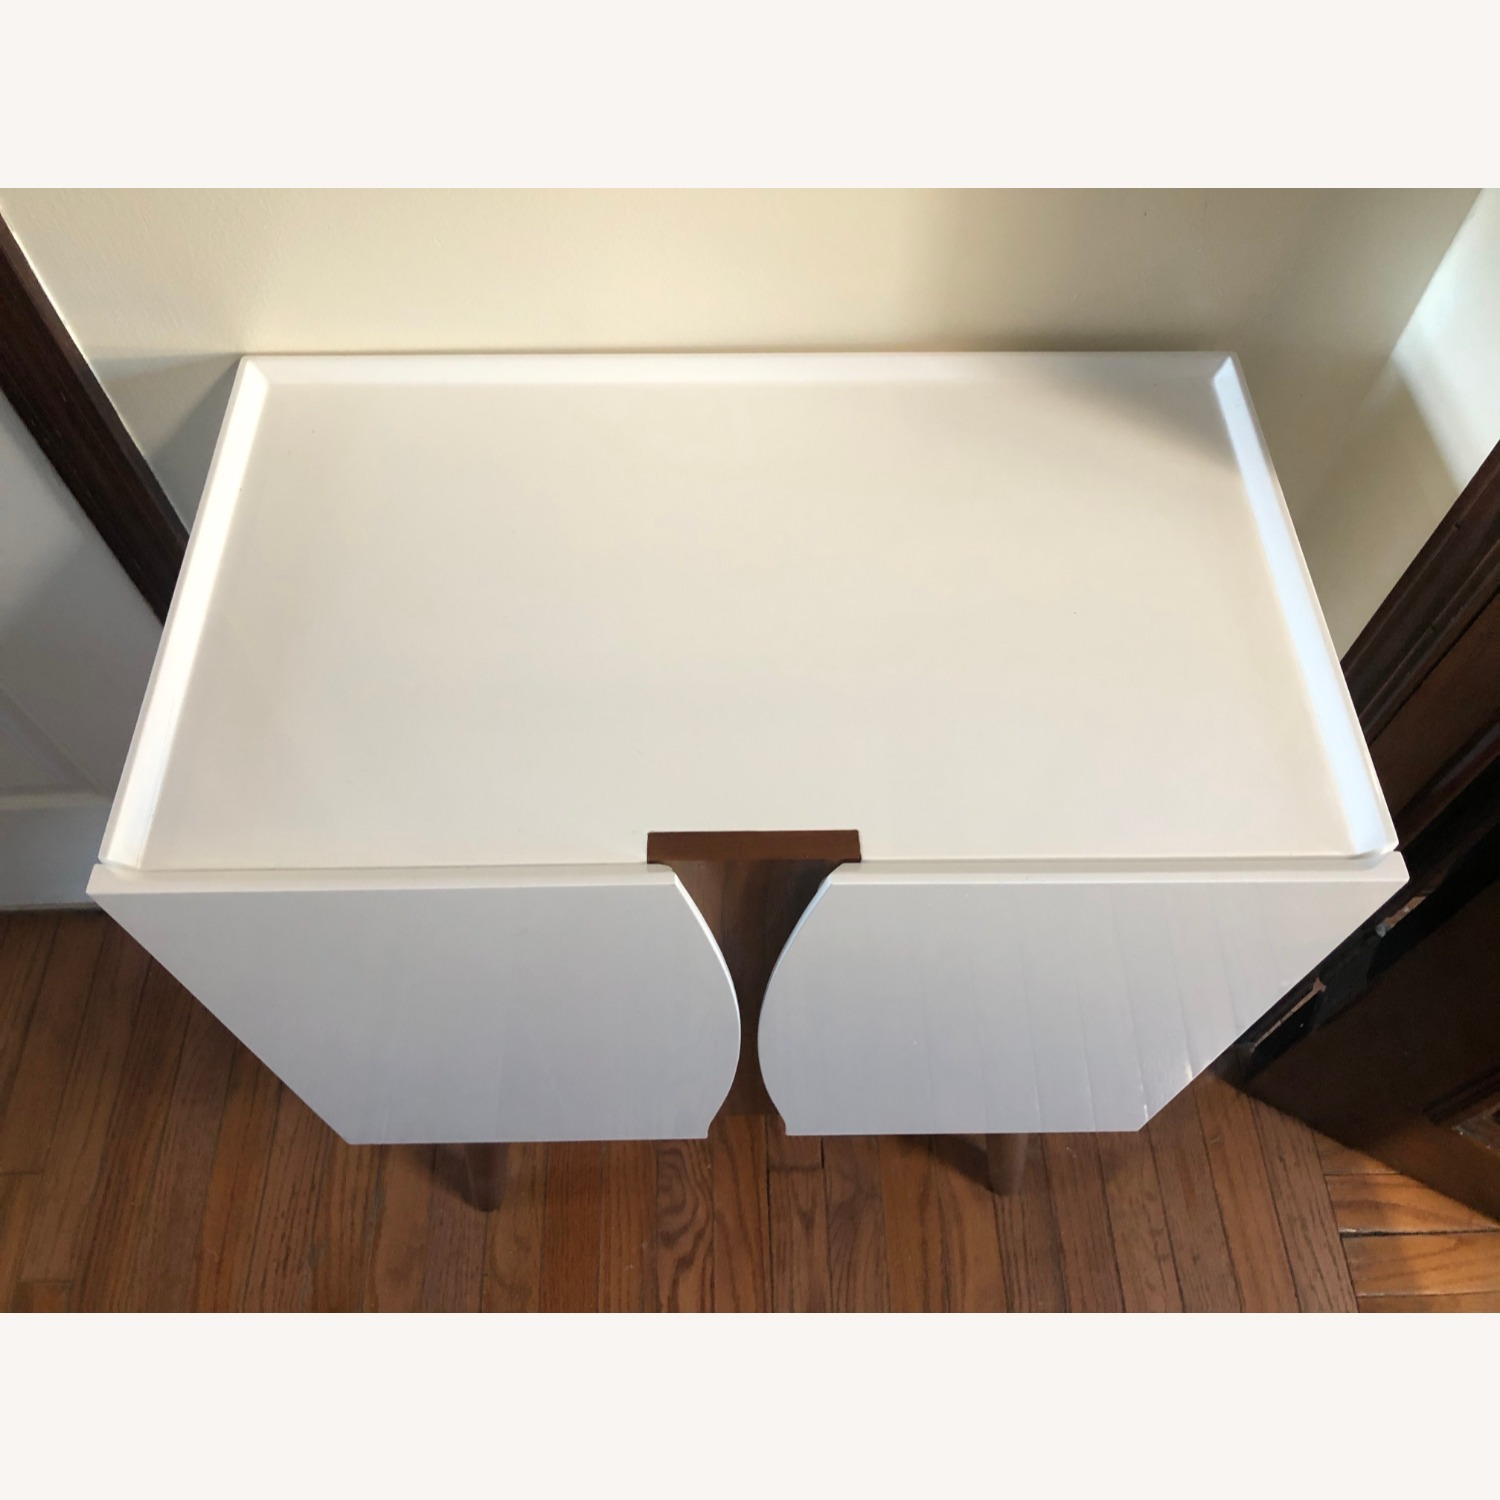 Midcentury Modern White Lacquer and Wood Cabinet - image-2